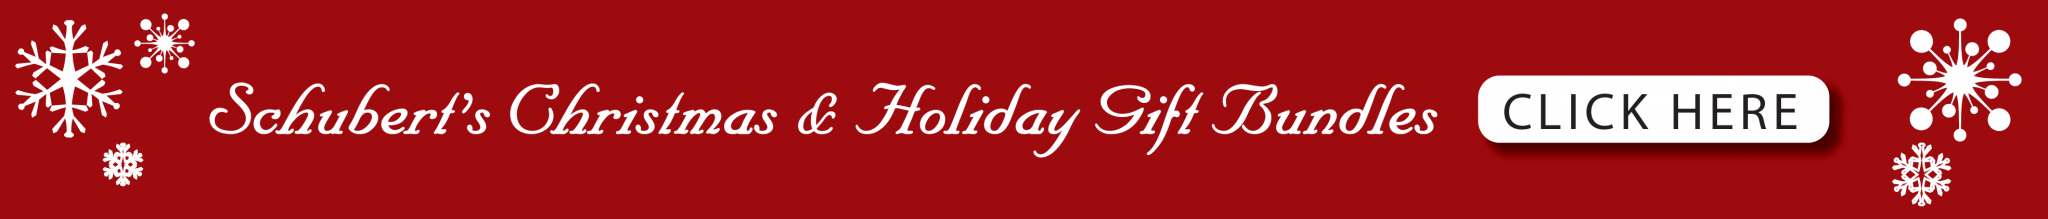 holiday-bundle-banner-for-website-01-01